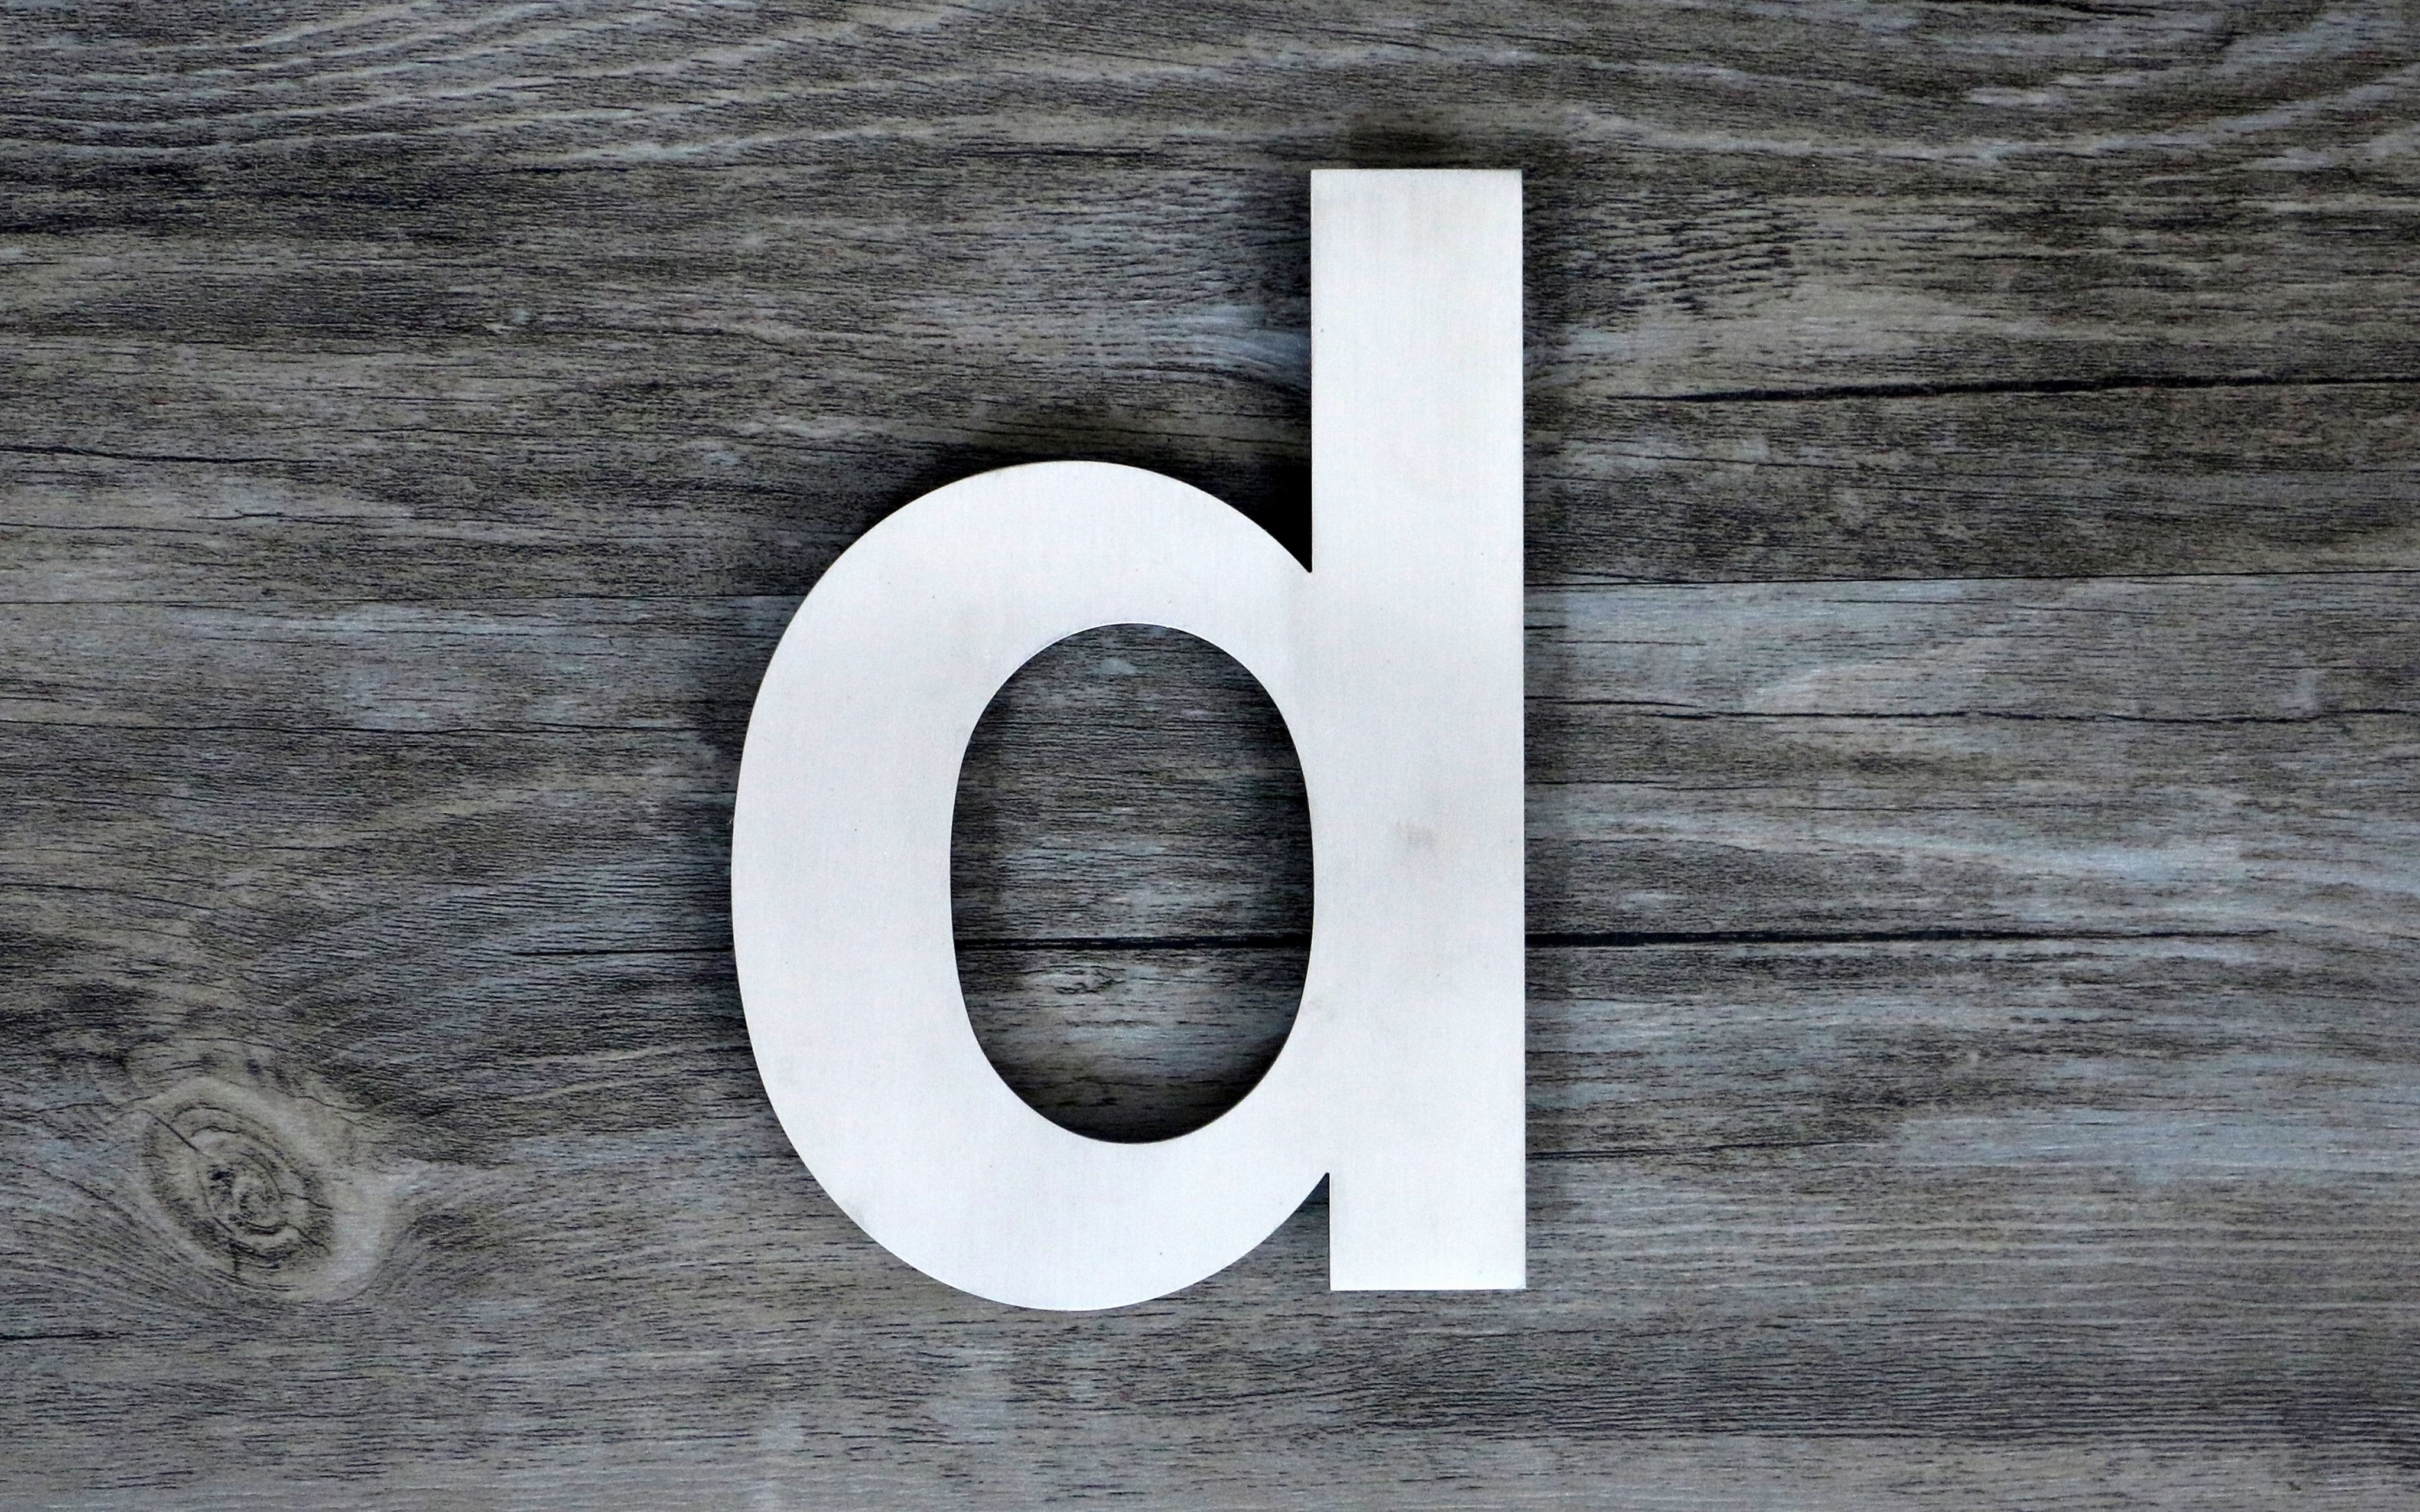 Modern floating steel house letter super large 12 inch letter d brushed solid 304 stainless steel floating appearance easy to install